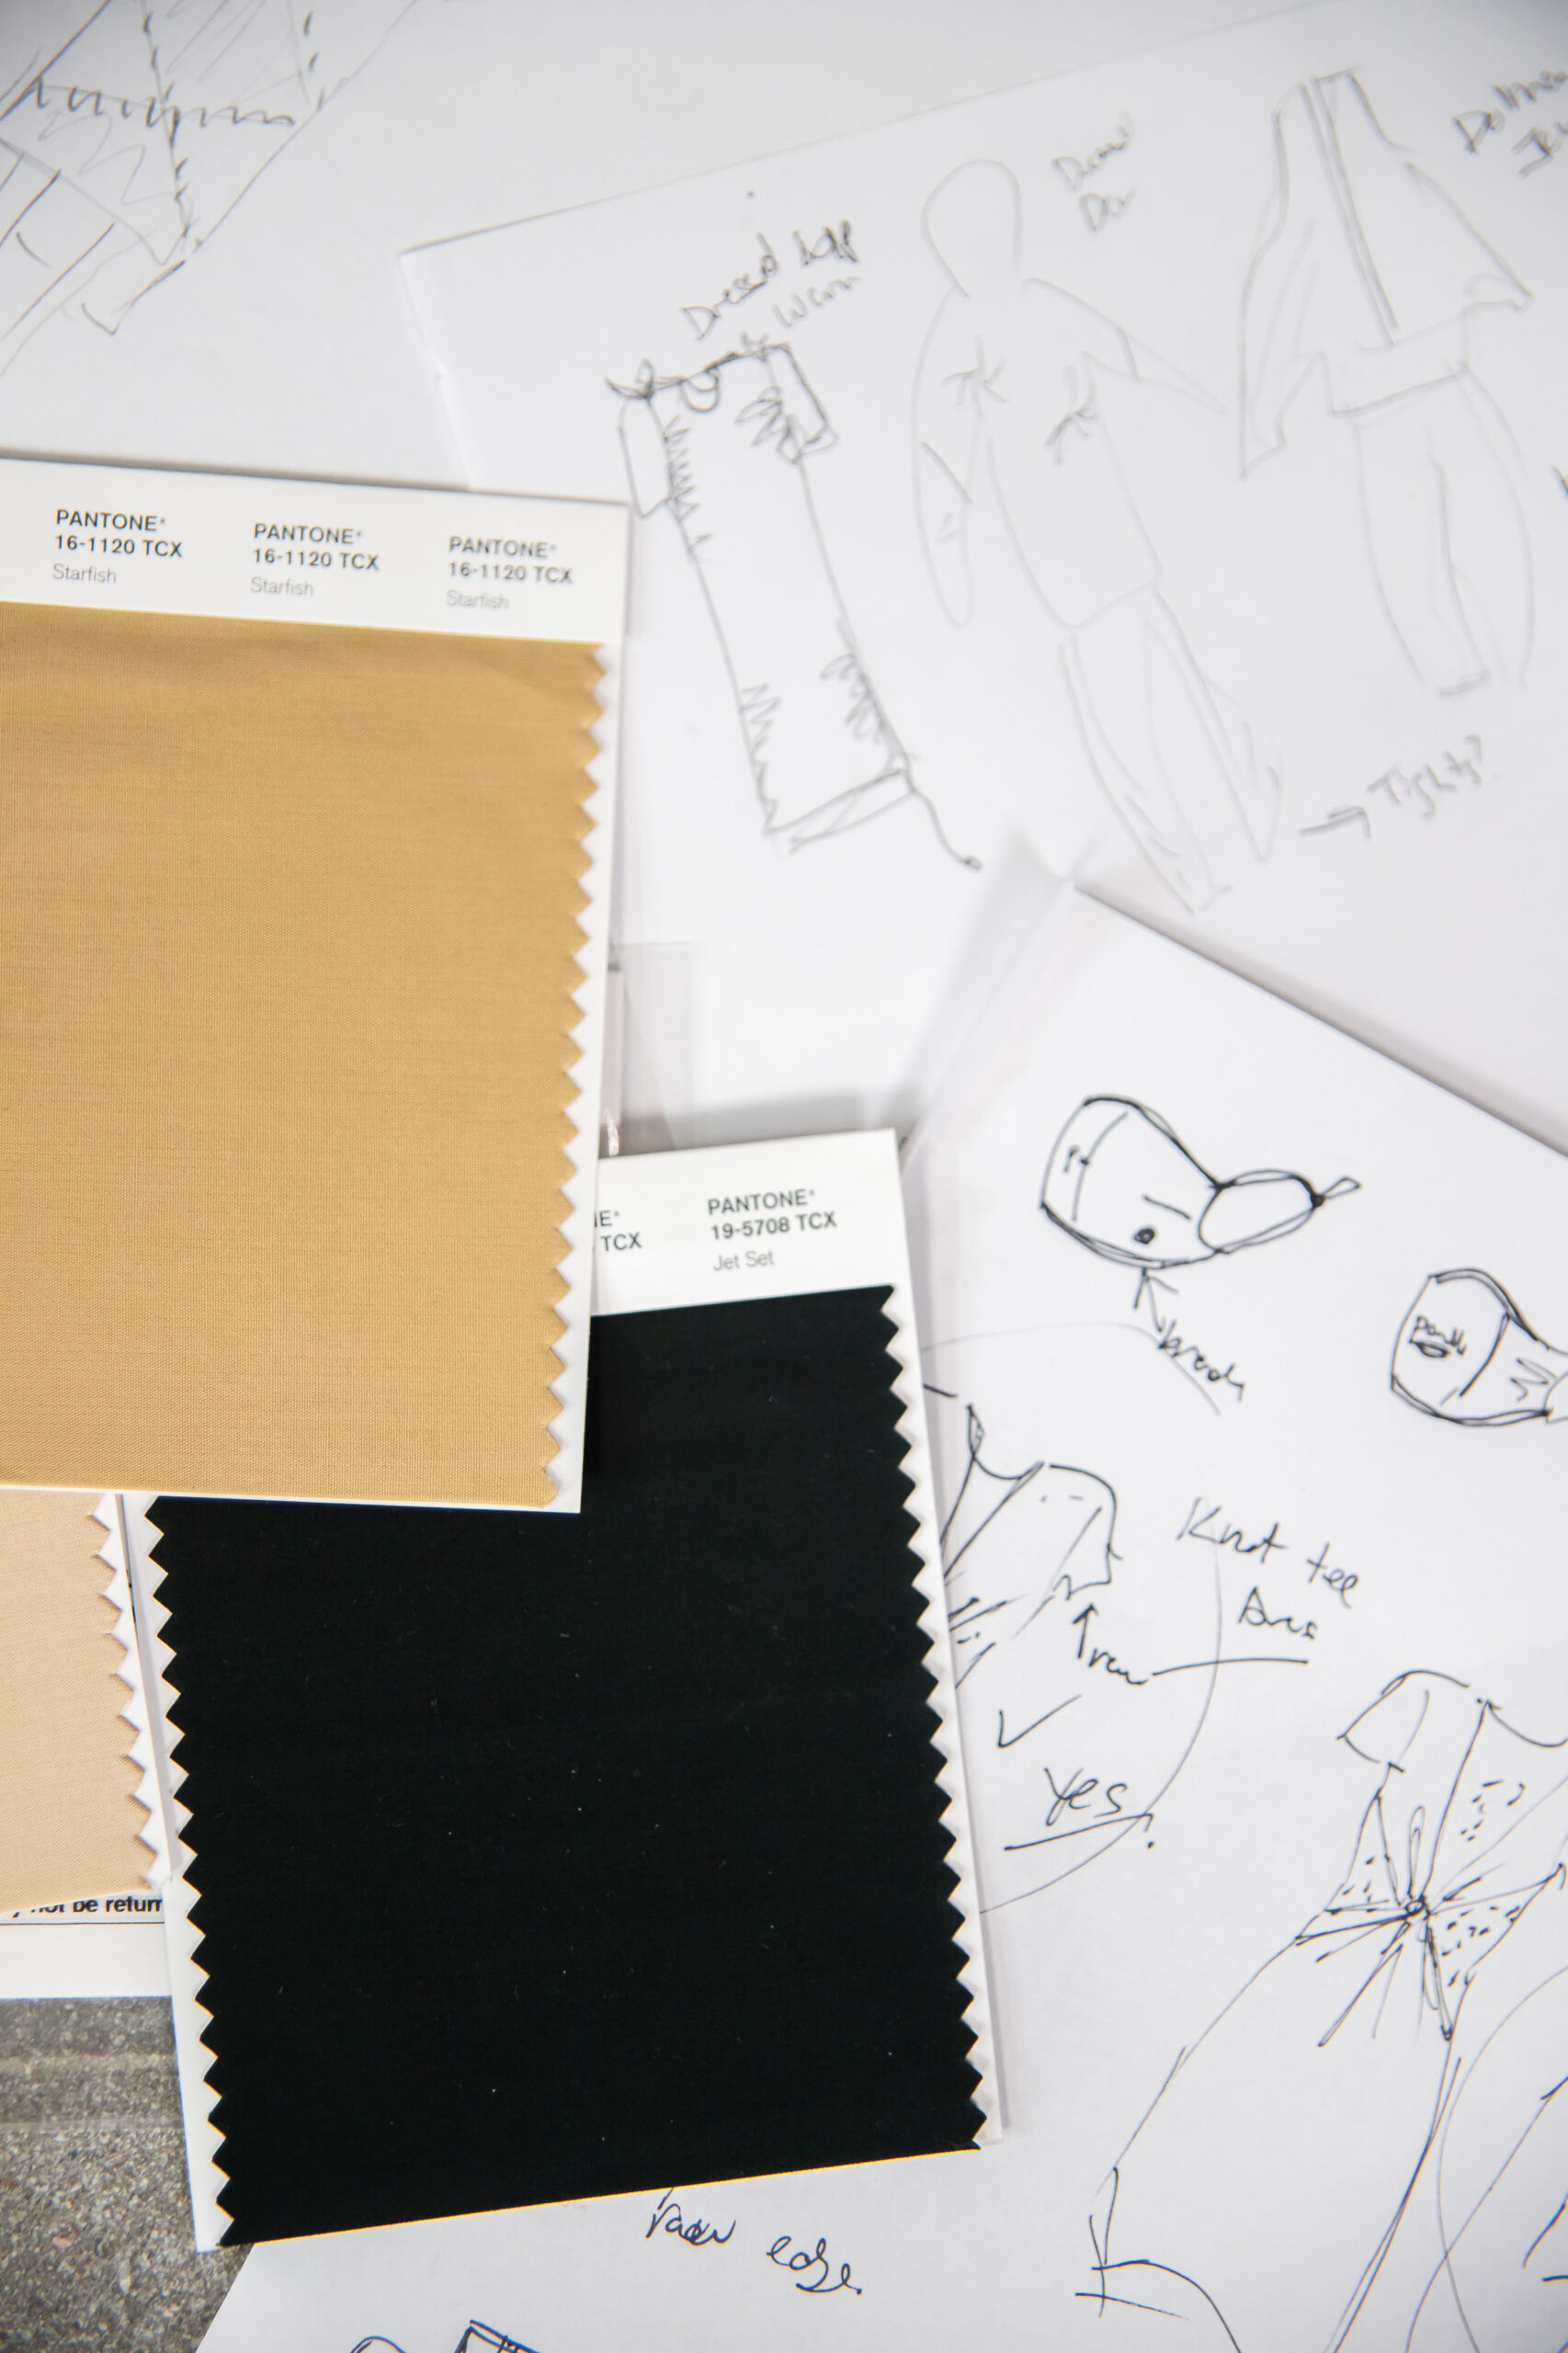 Apparelmark swatches - Freelance fashion design services in North America and Asia.